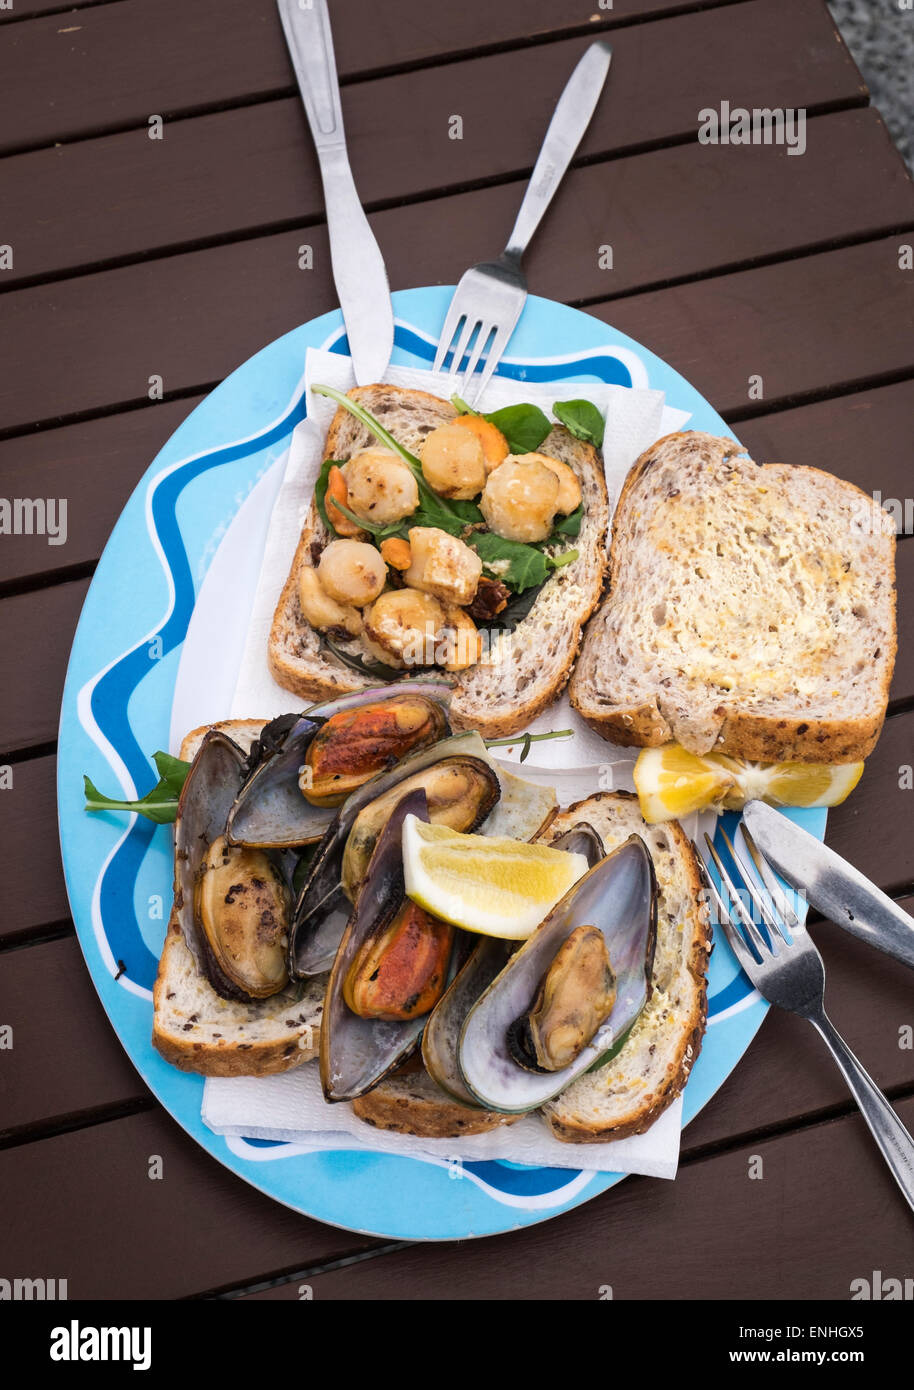 Barbecued scallops and green lipped mussels on bread at an outdoor food shack on the beach at Kaikoura, New Zealand Stock Photo